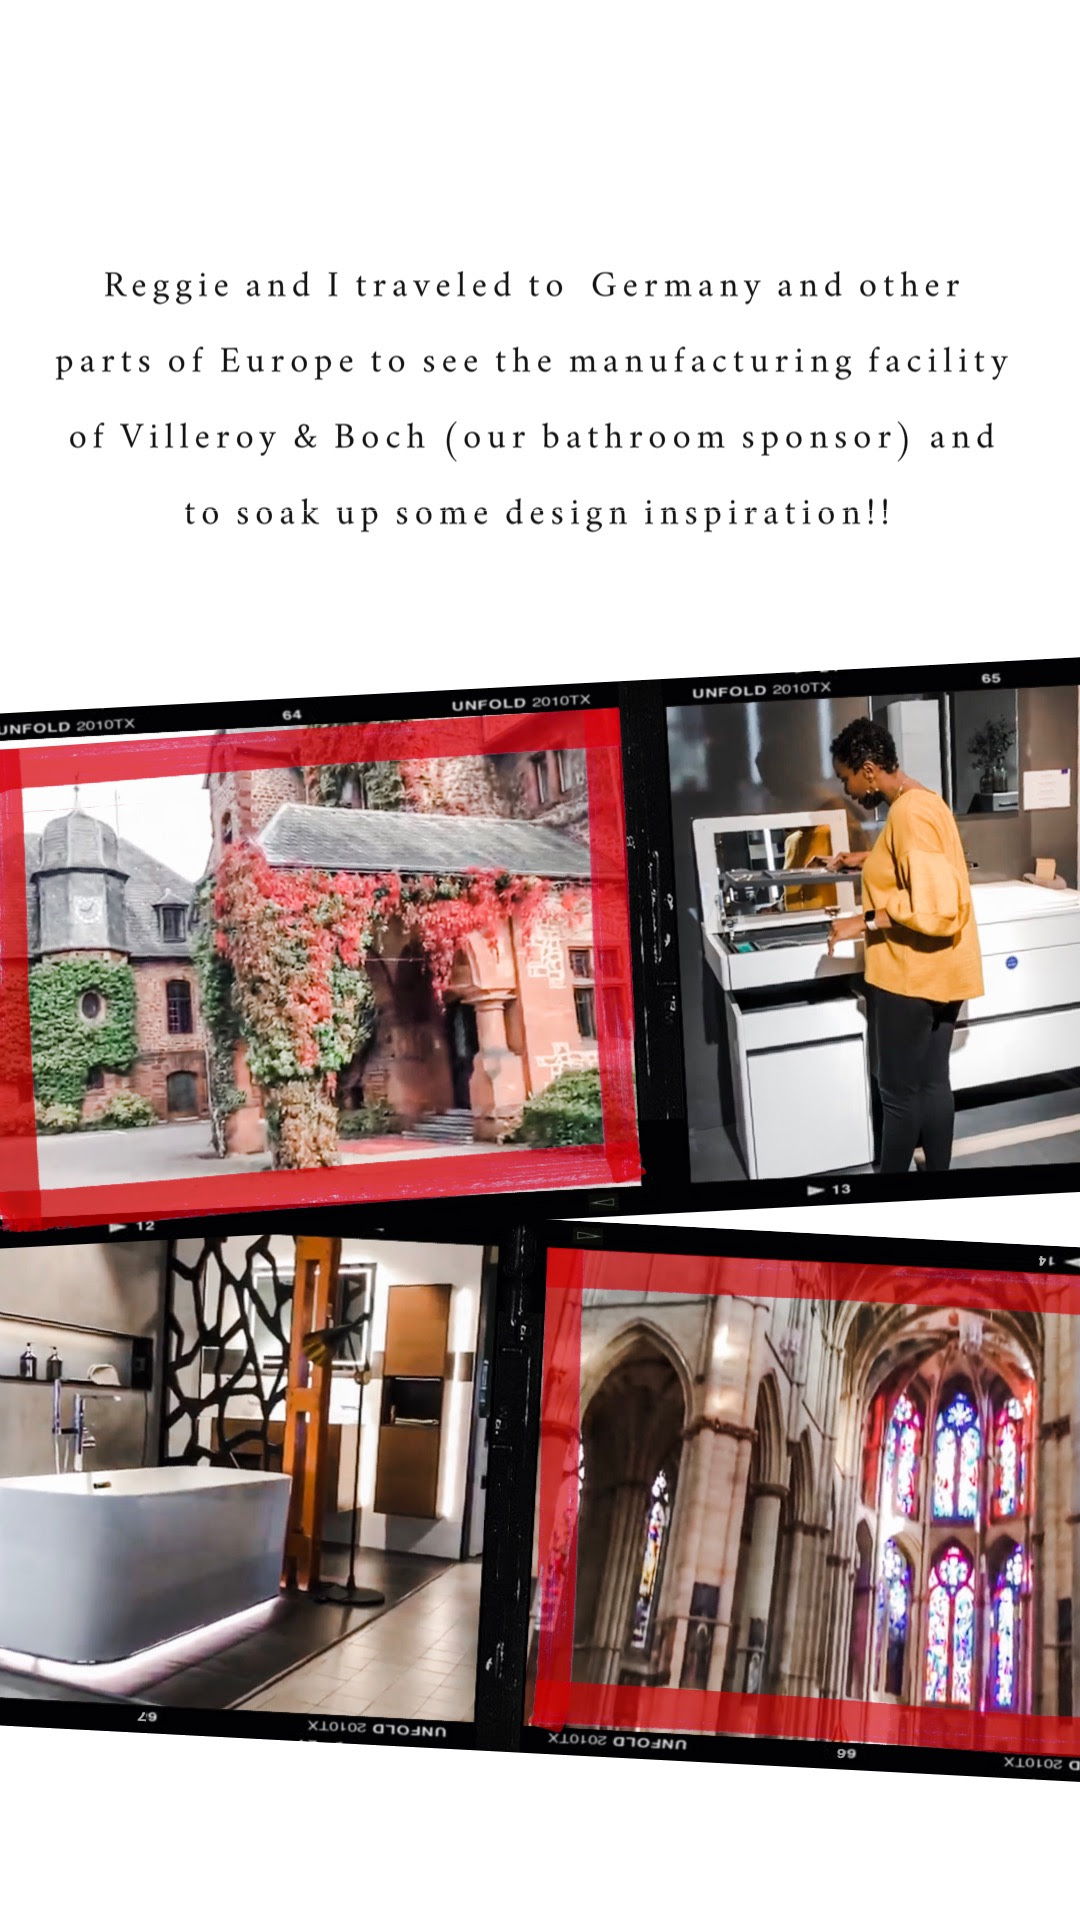 ABI- Arianne Bellizaire in Europe collecting design inspiration